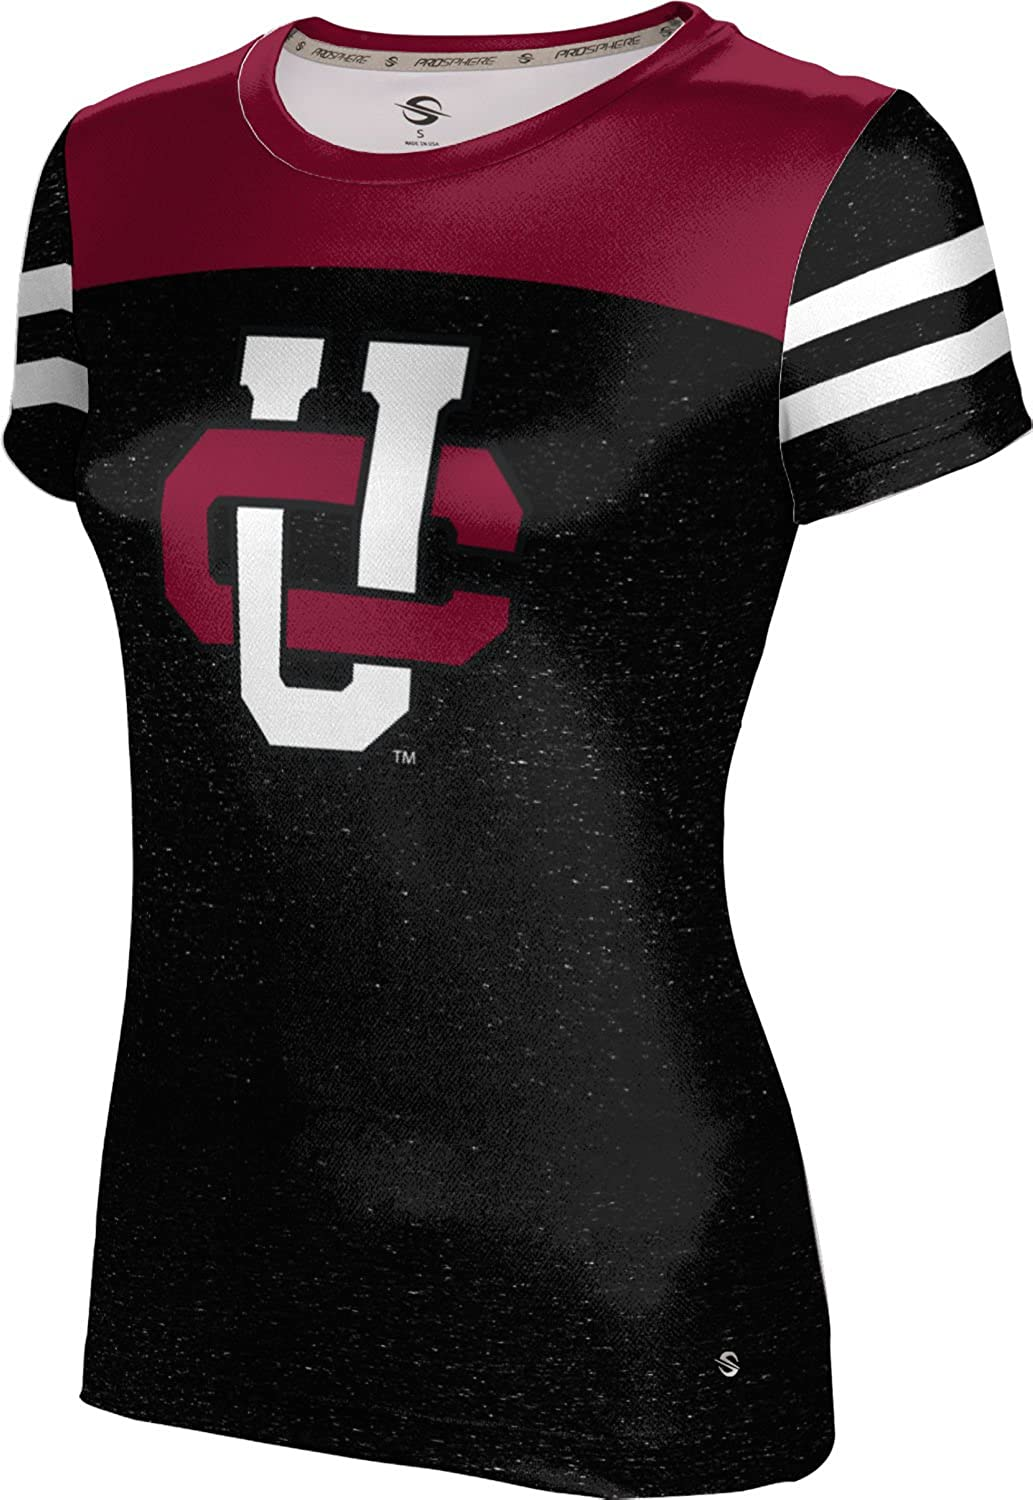 ProSphere Free shipping anywhere in the nation 2021 Chapman University Girls' Gameday Performance T-Shirt